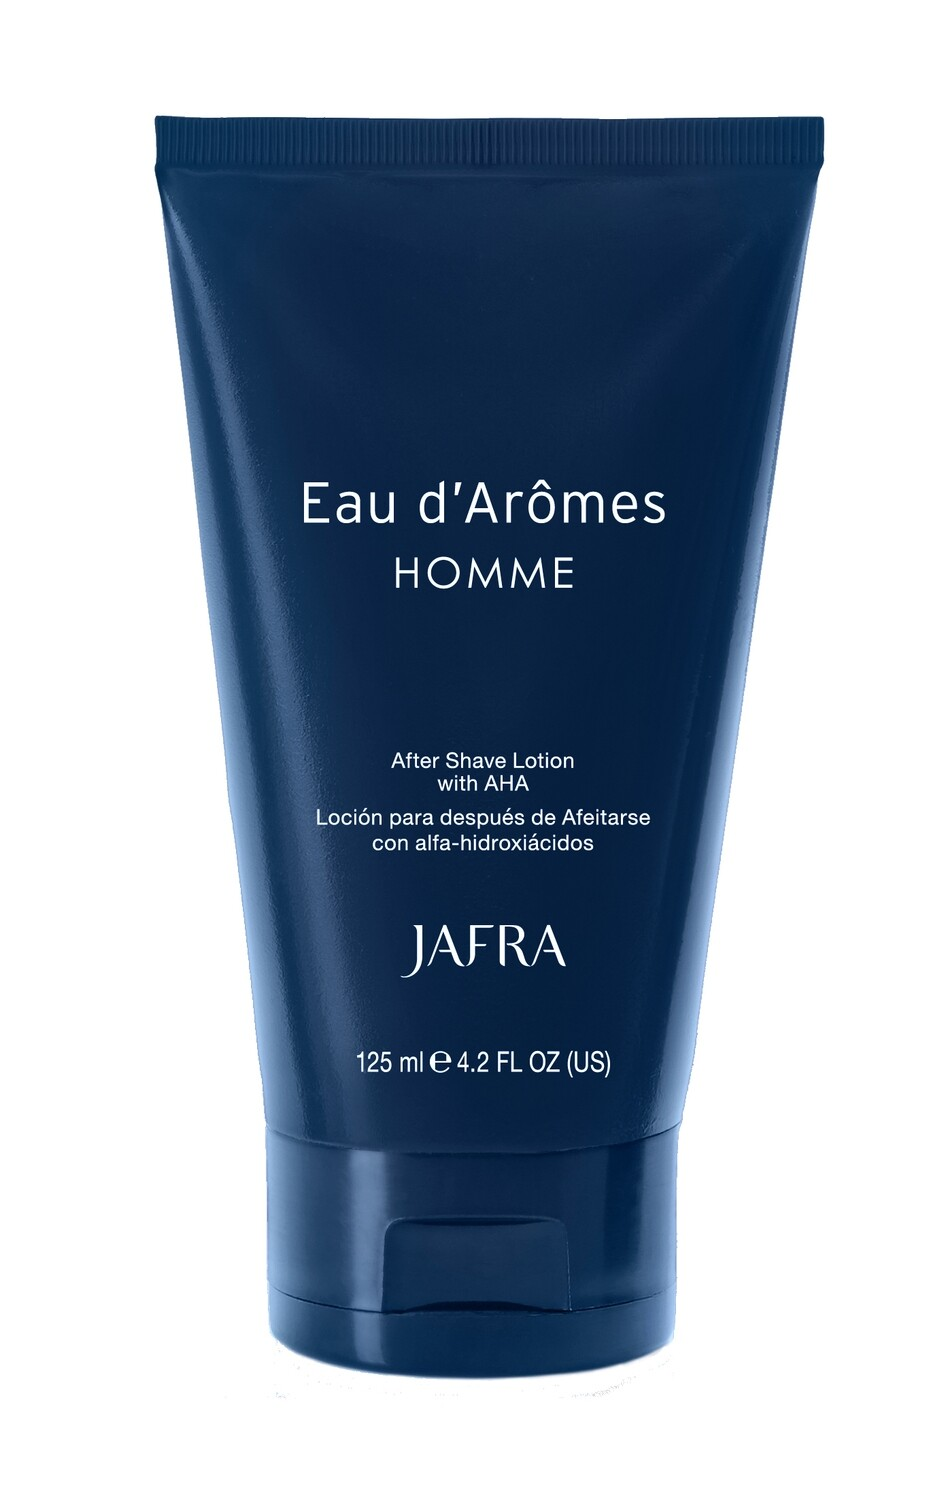 Eau d'Arômes Homme – After Shave Lotion with AHA